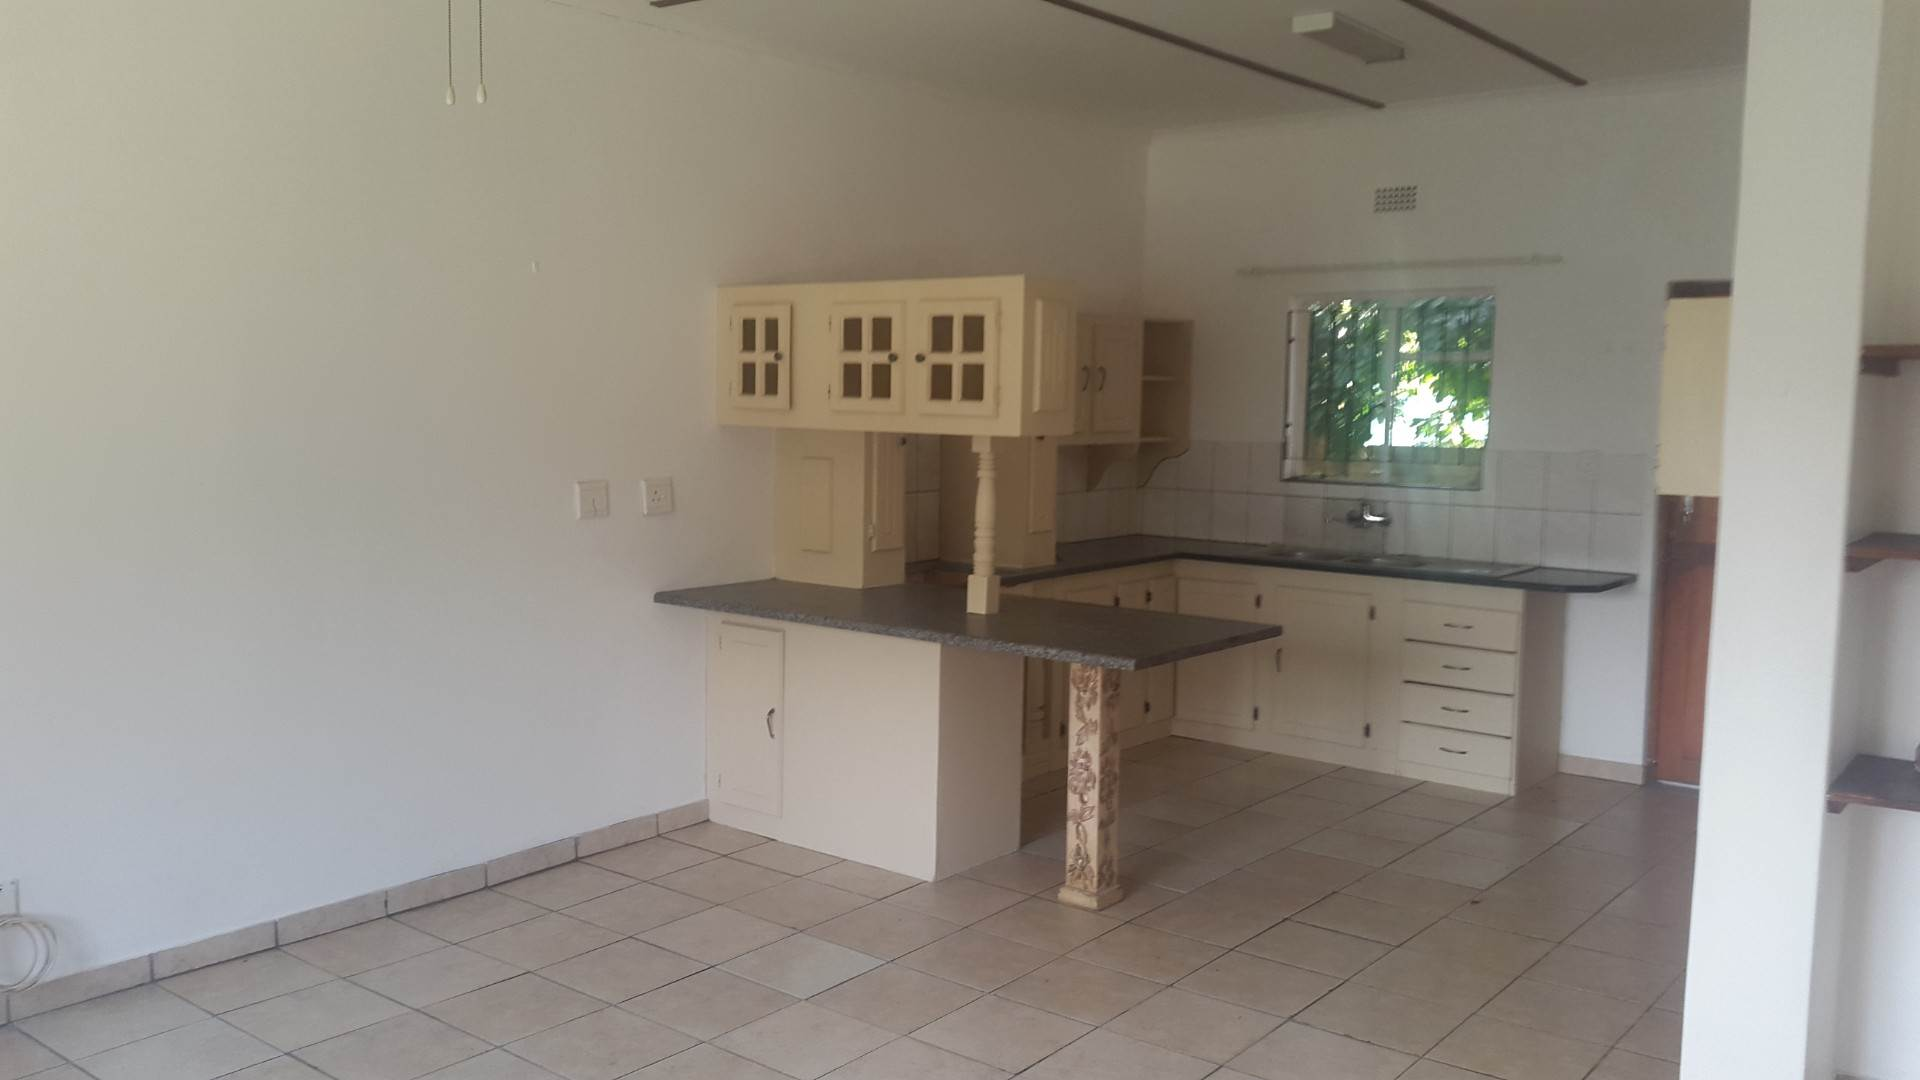 2 BedroomTownhouse For Sale In Birdswood